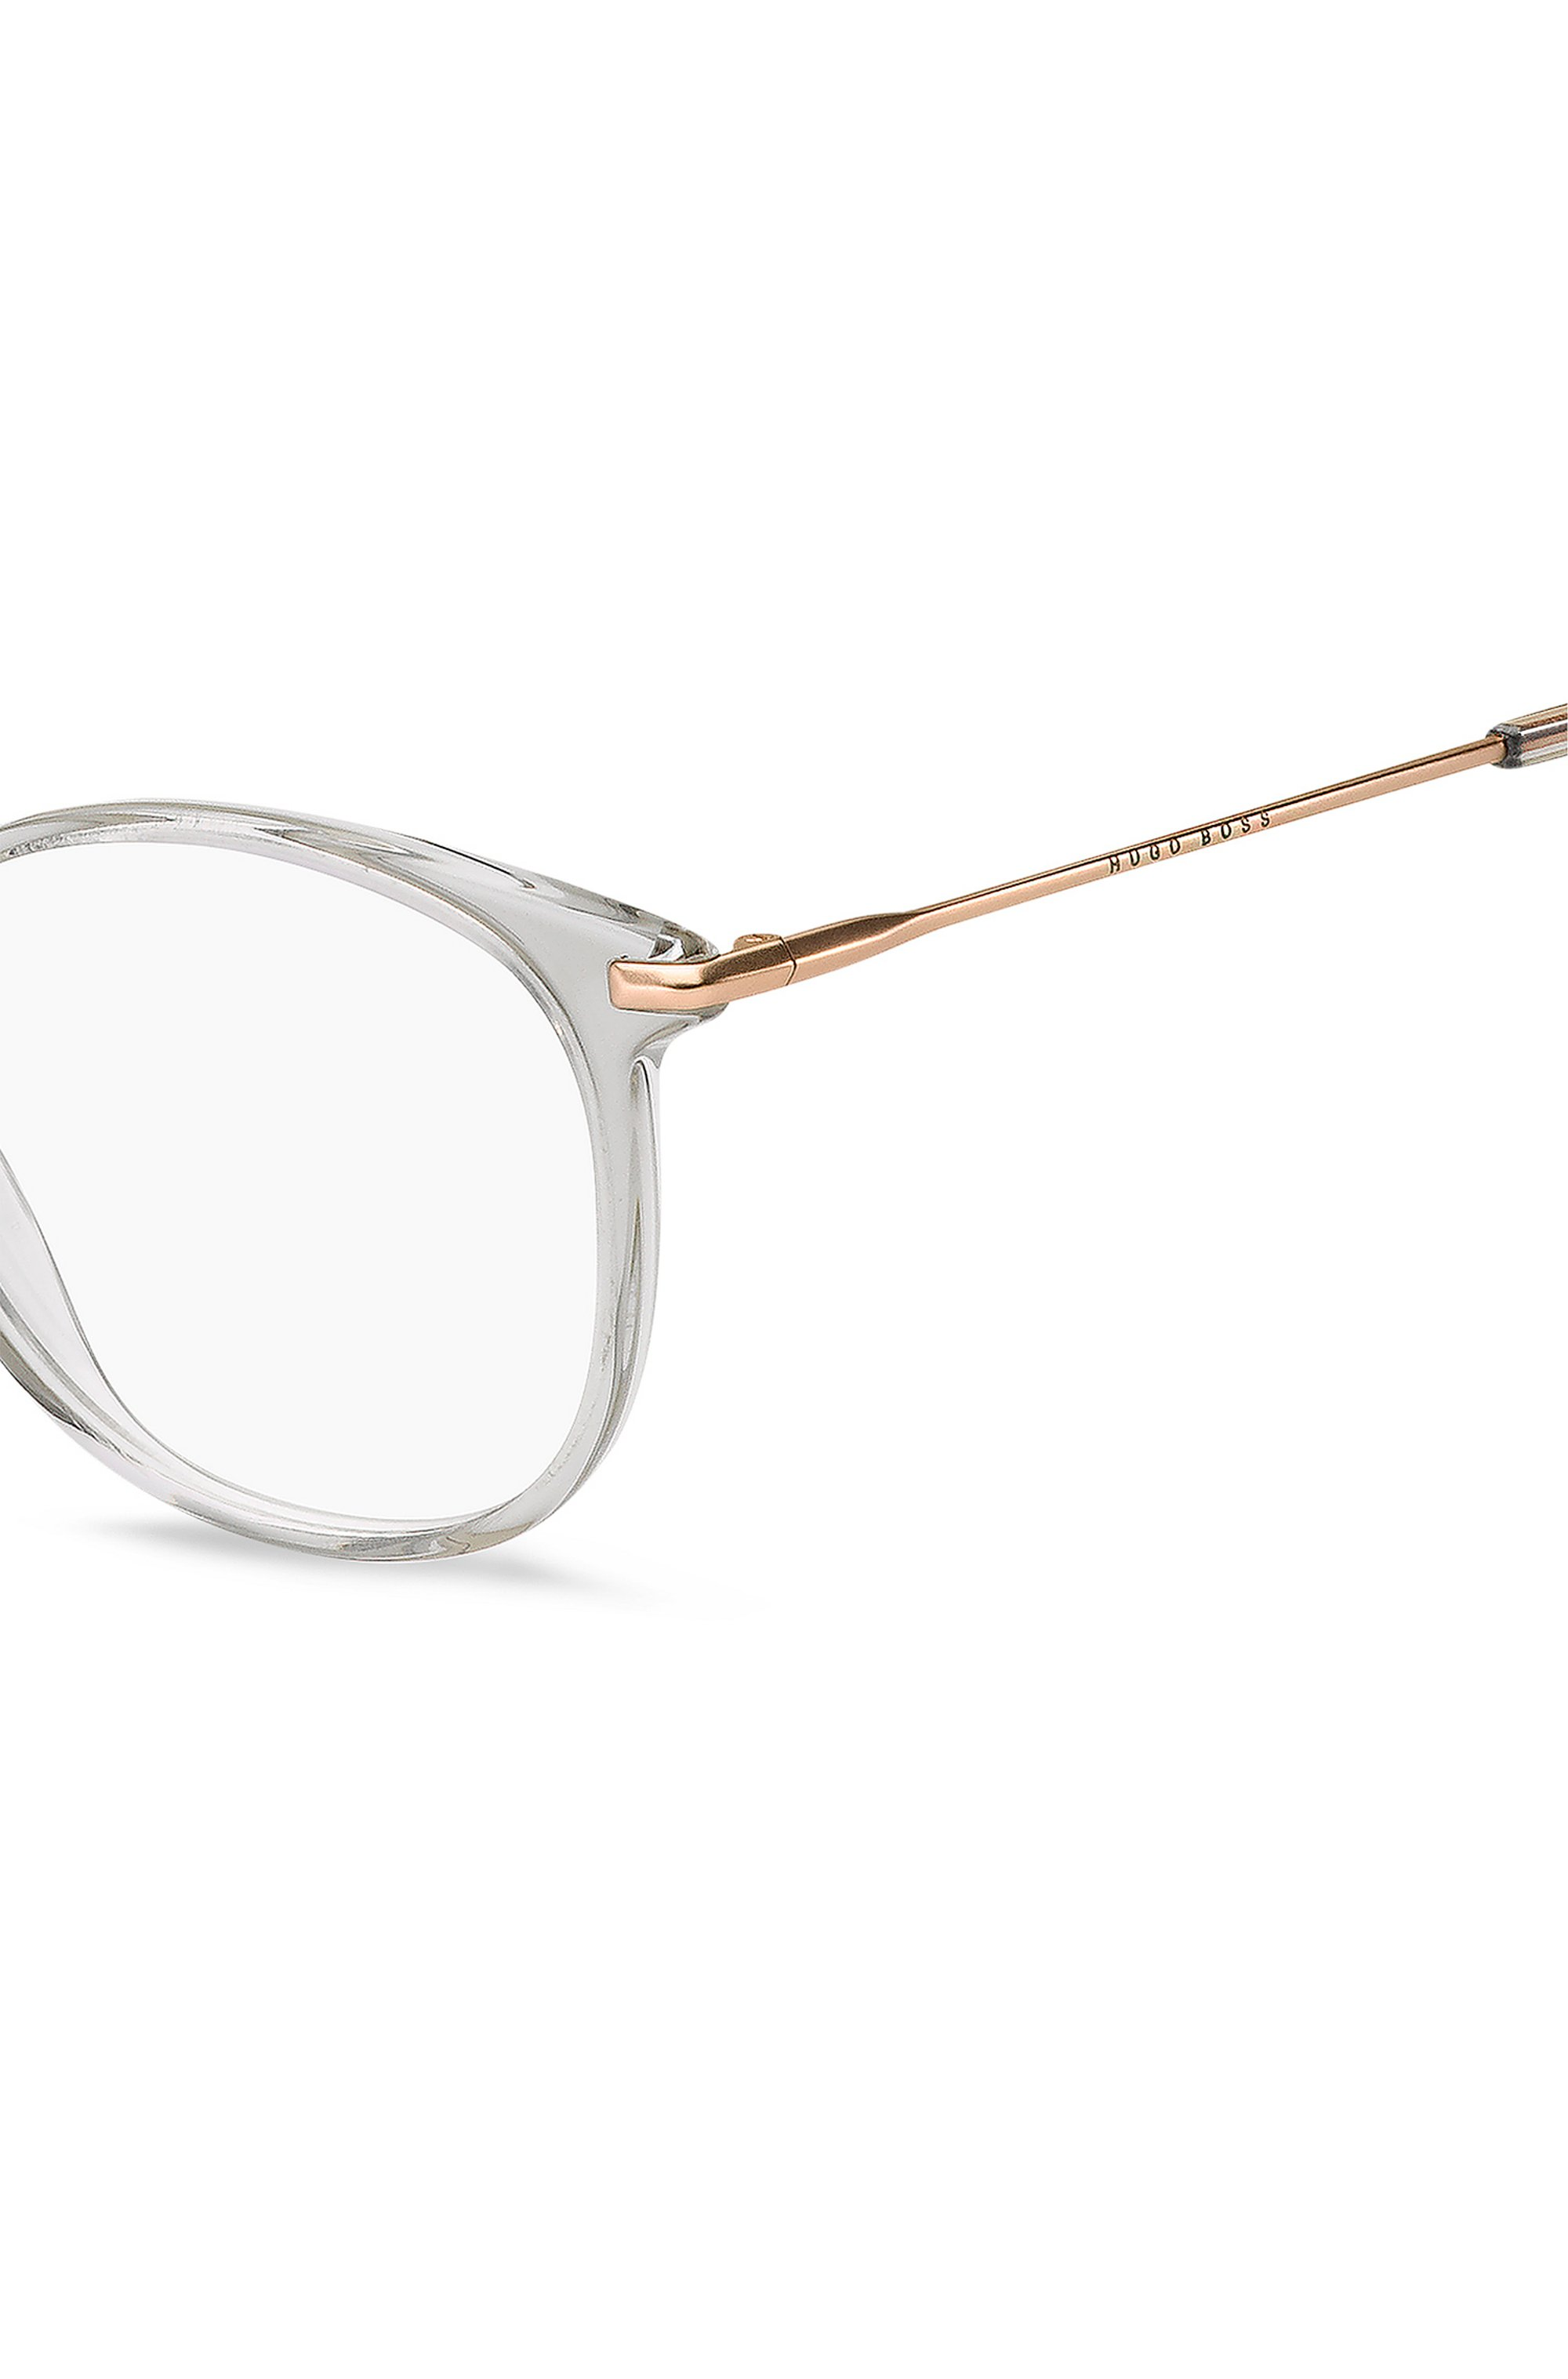 Grey-acetate optical frames with gold-tone temples